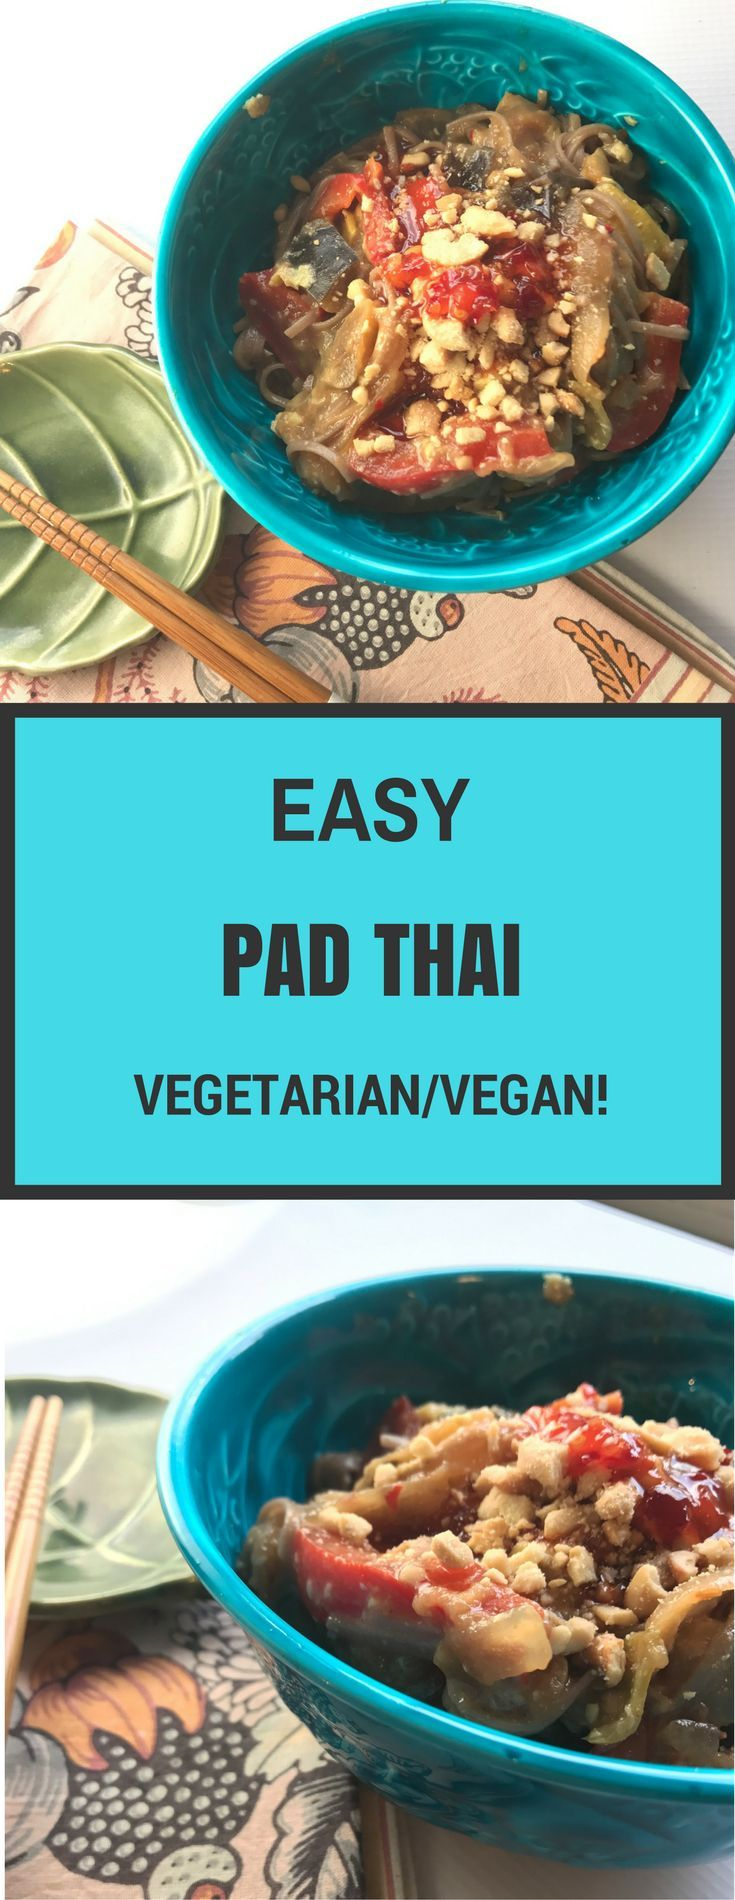 99 best Thai Recipes images on Pinterest | Cooking recipes, Dinner ...